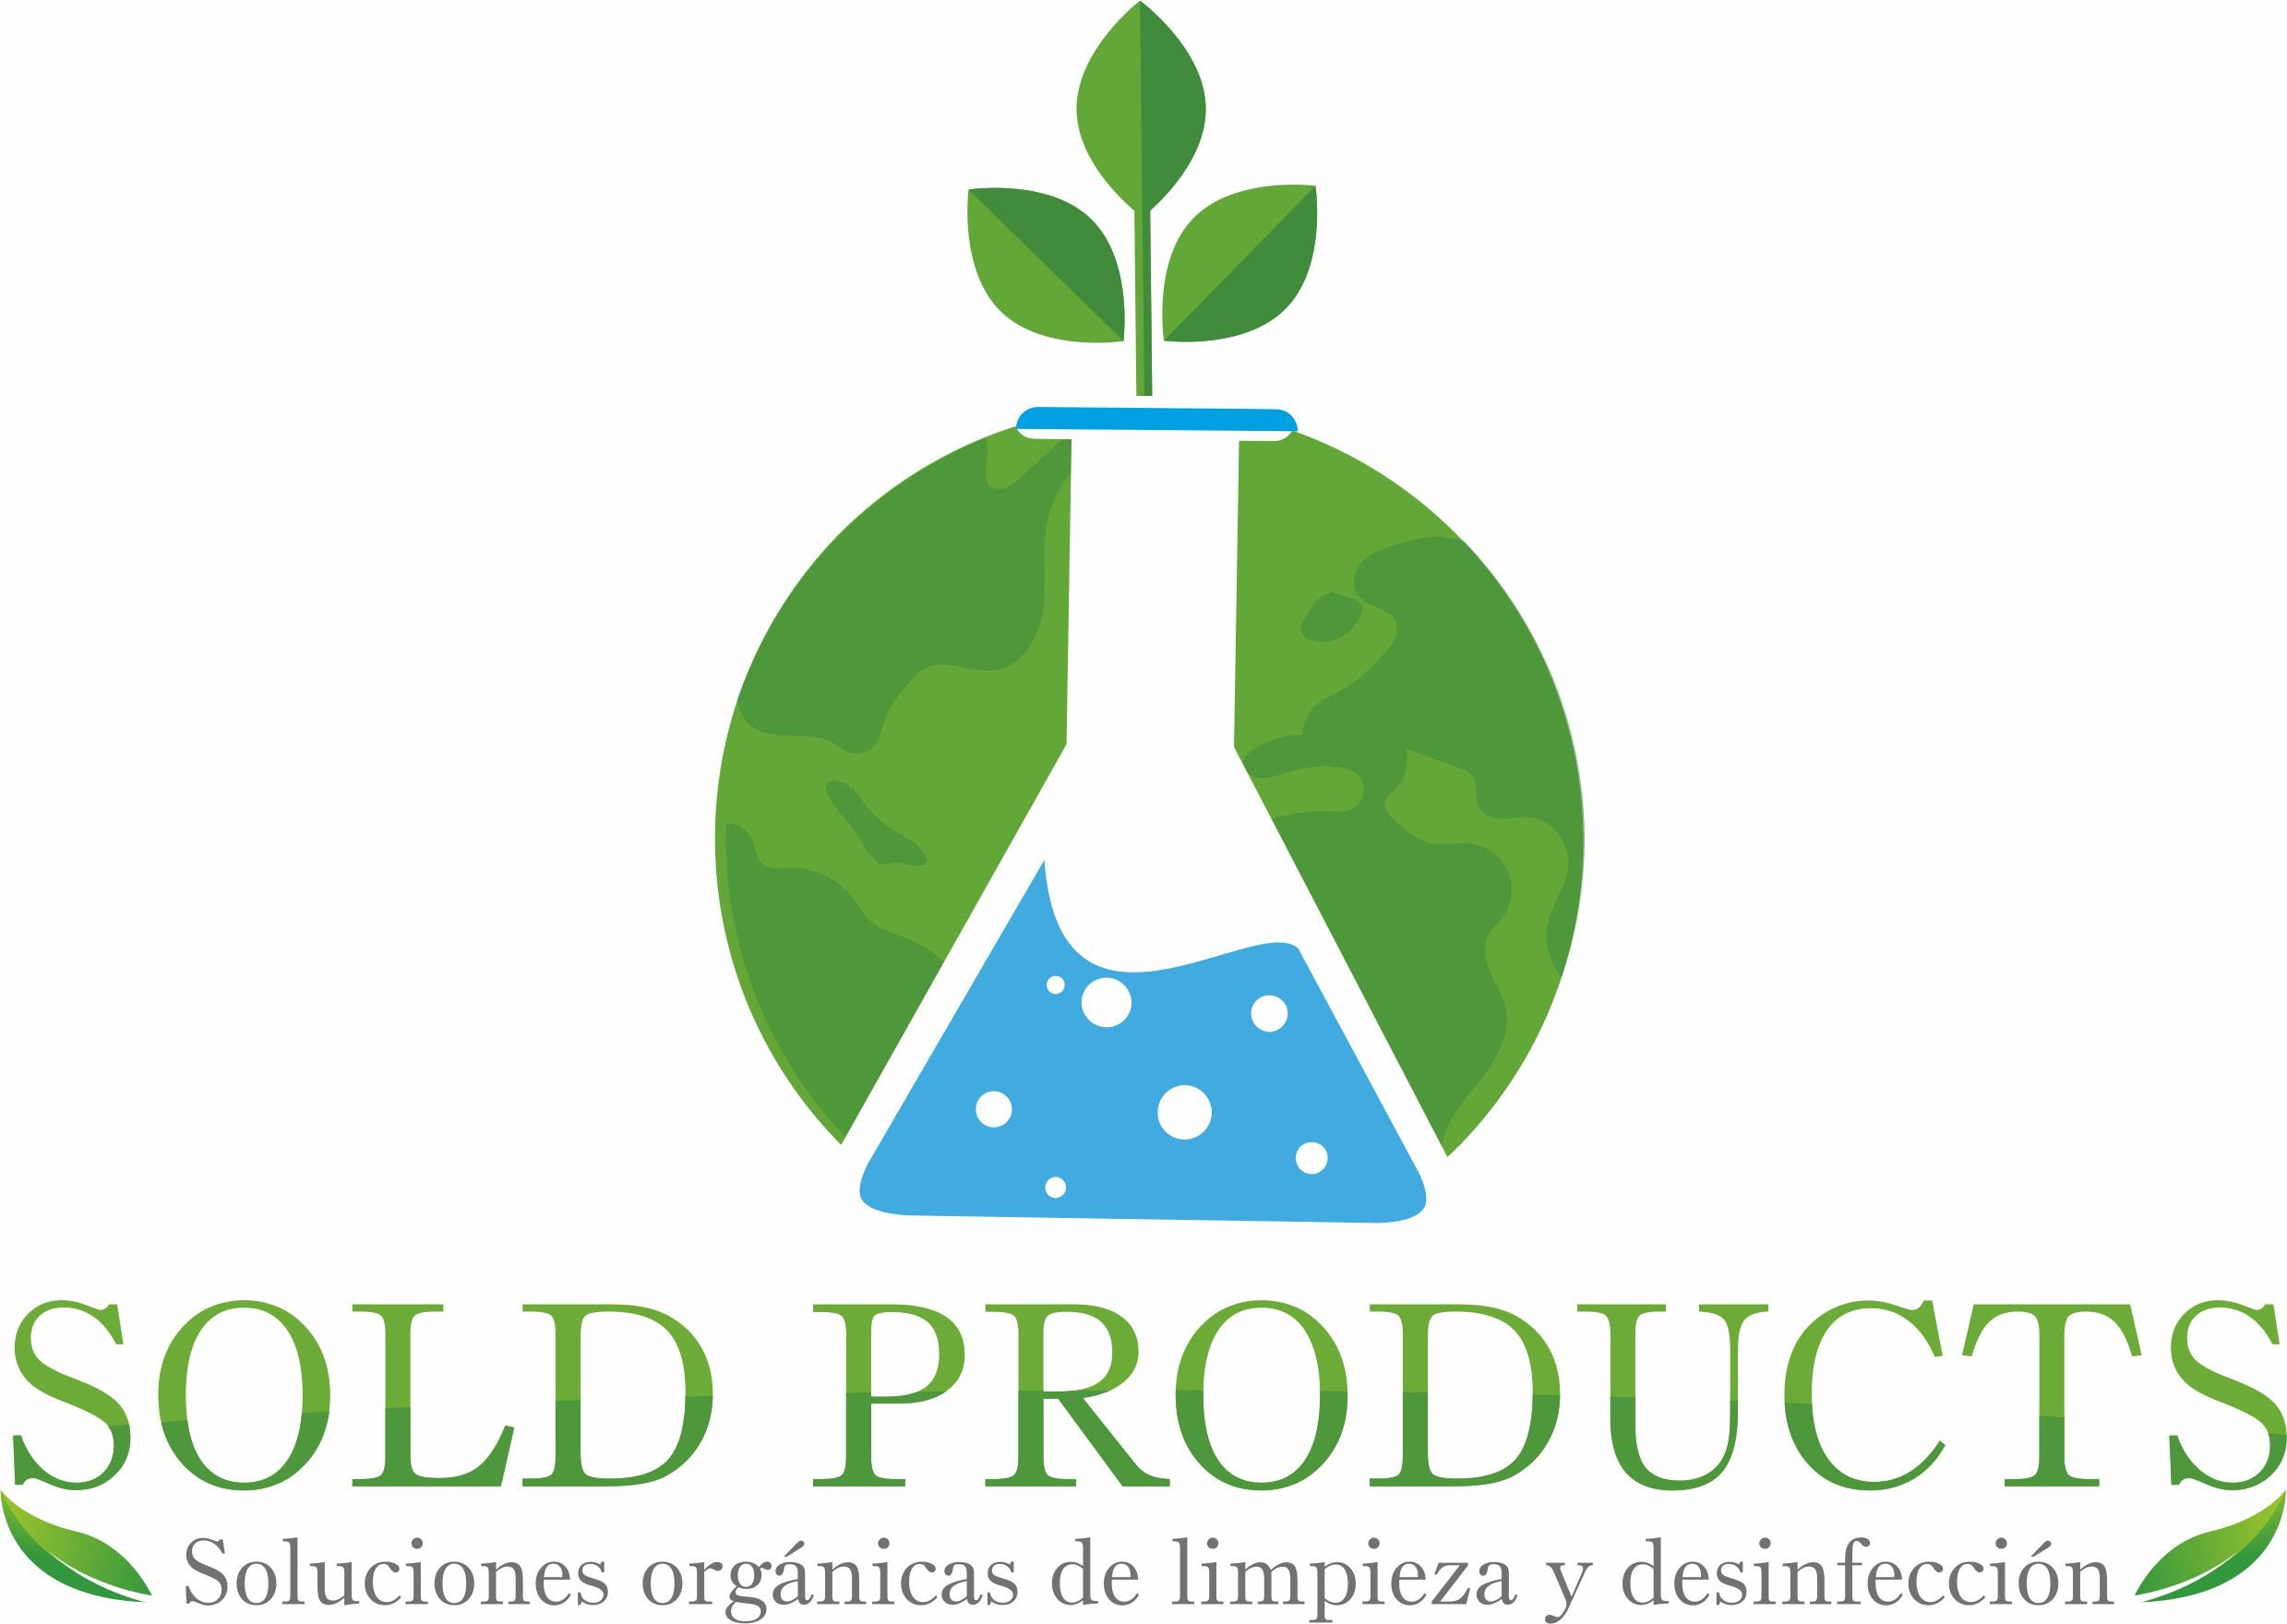 Logo vendedor destacado: SOLD PRODUCTS<